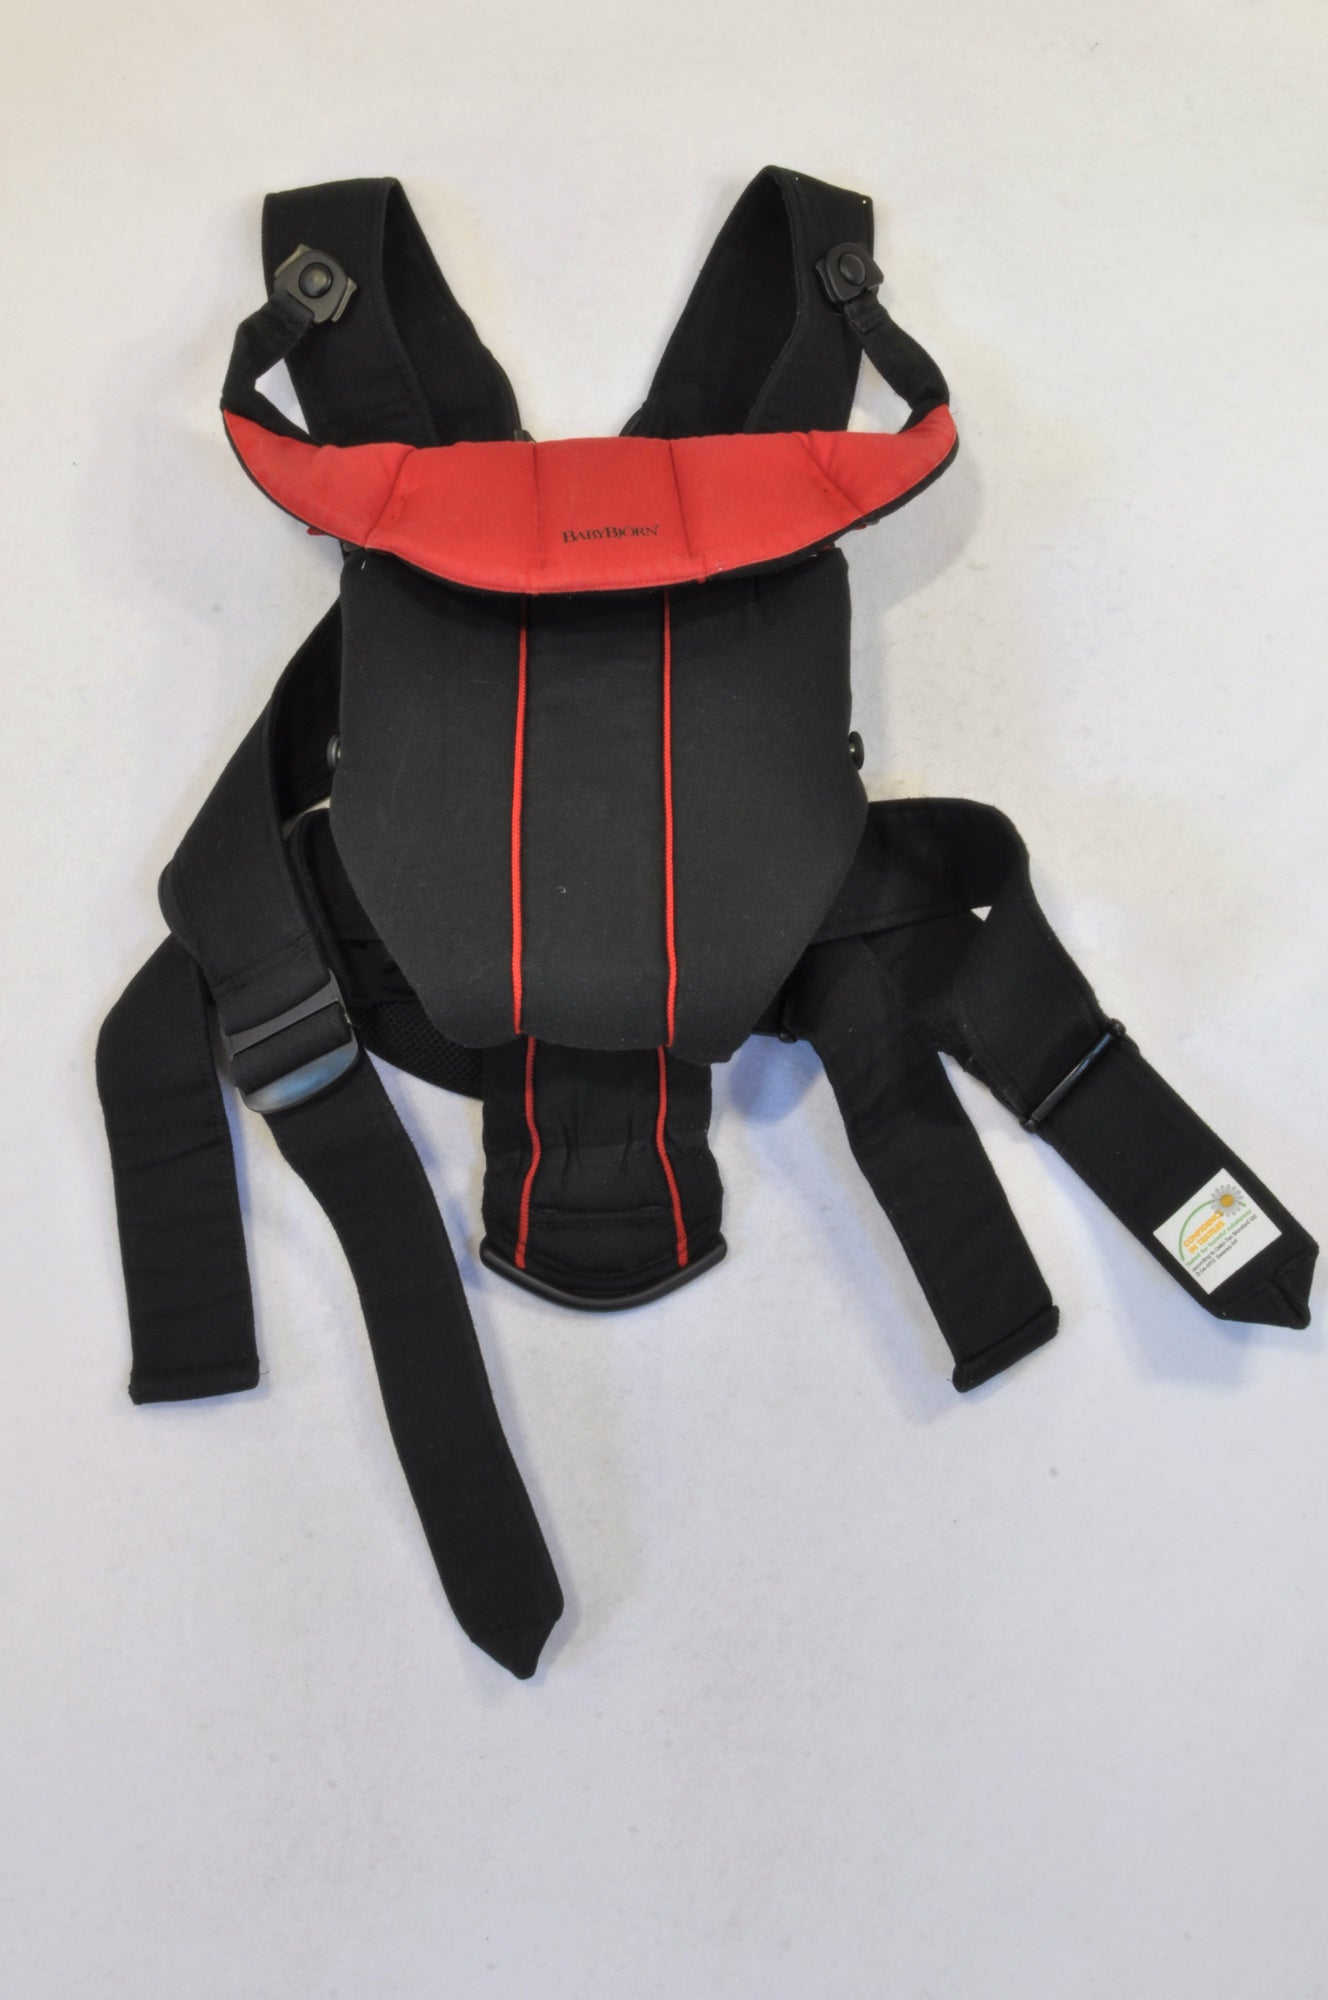 db0120a9858 Baby Bjorn Red   Black Active Baby Carrier Unisex NB to 18 months ...